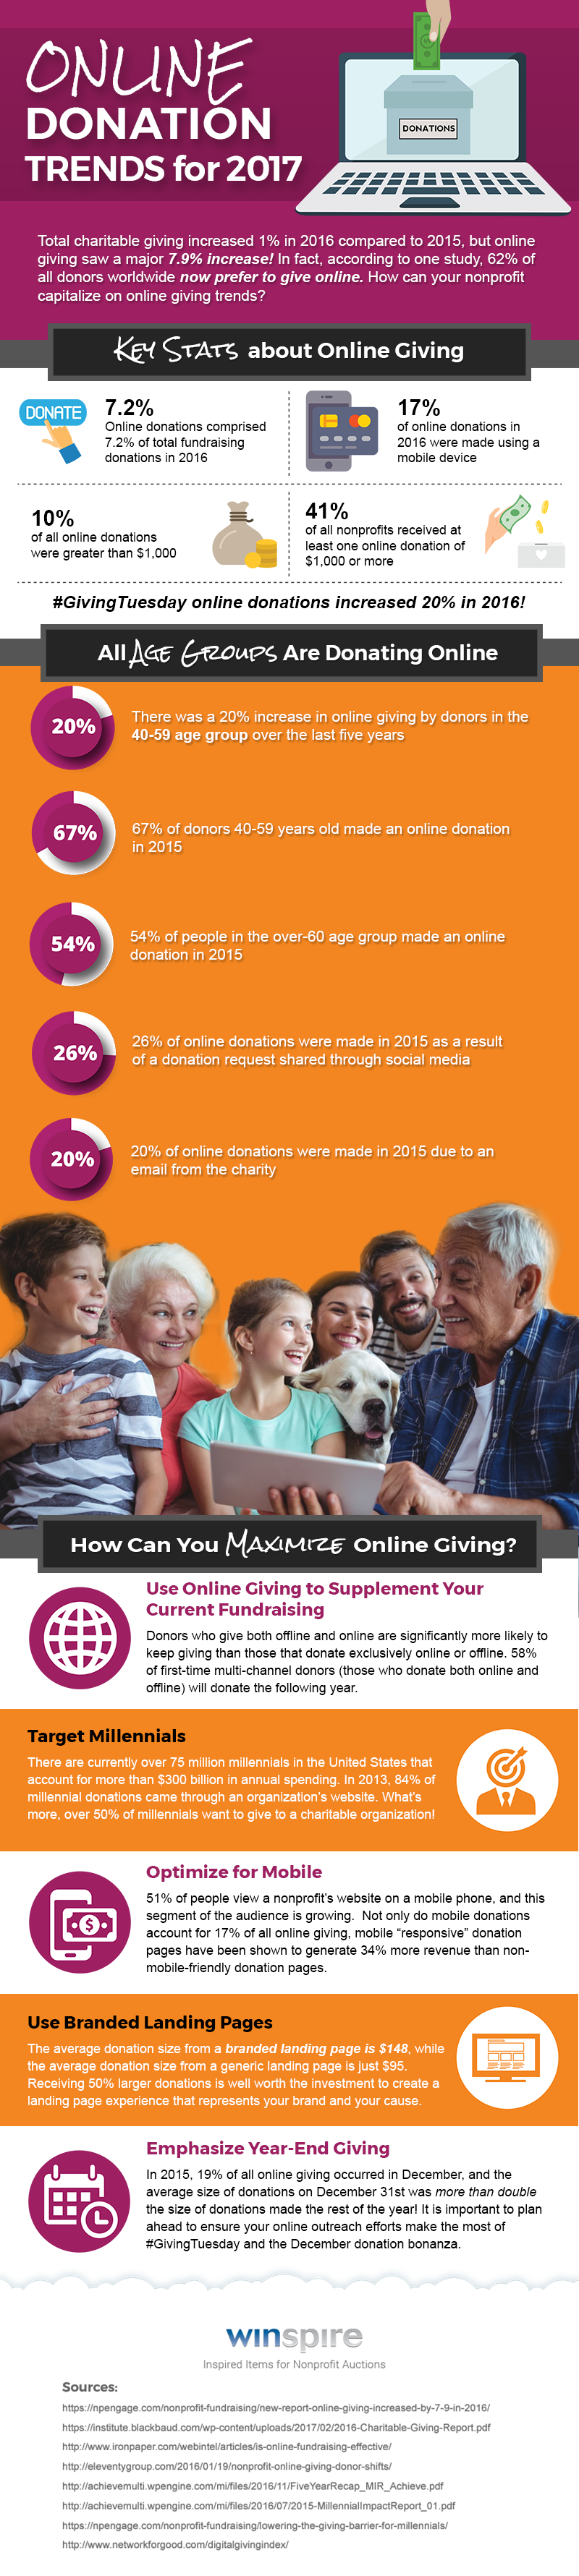 Online_Donation_Trends_in_2017-infographic.png